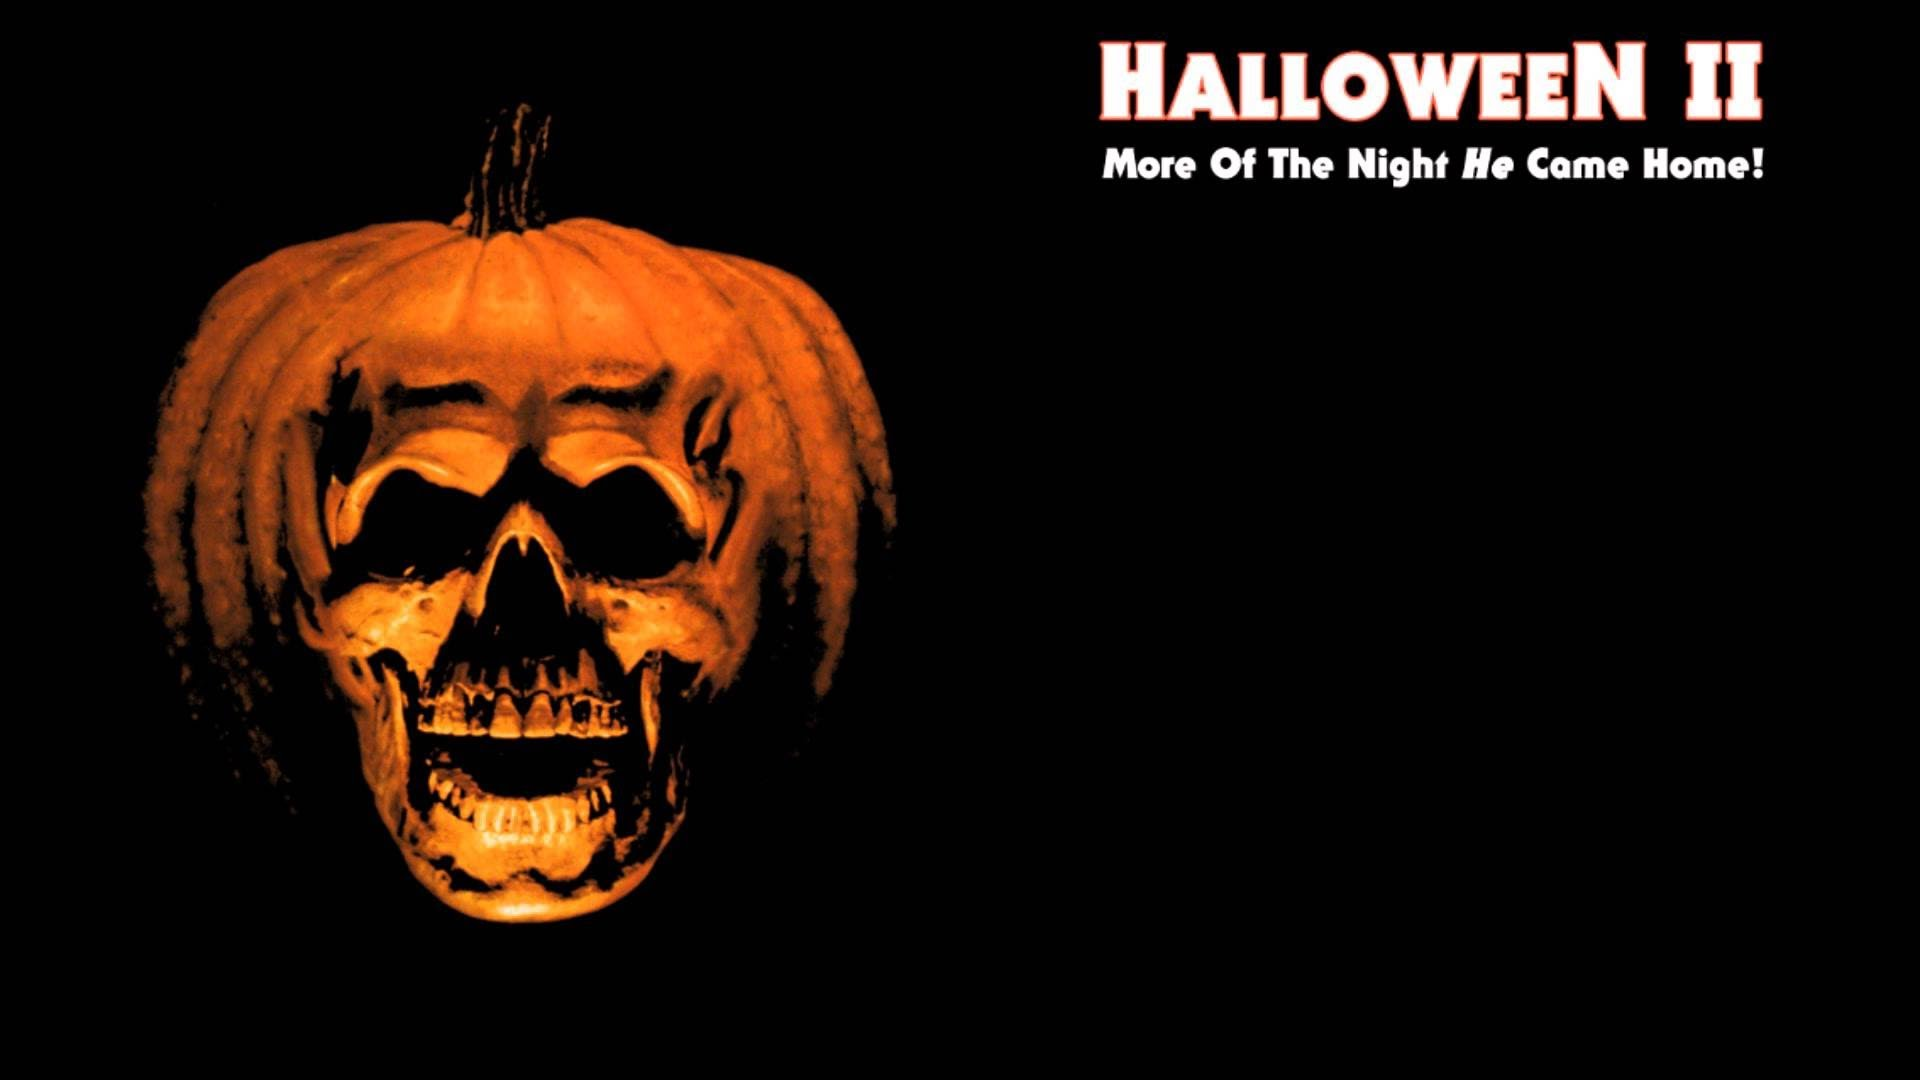 Halloween II Movie Wallpapers | WallpapersIn4k net